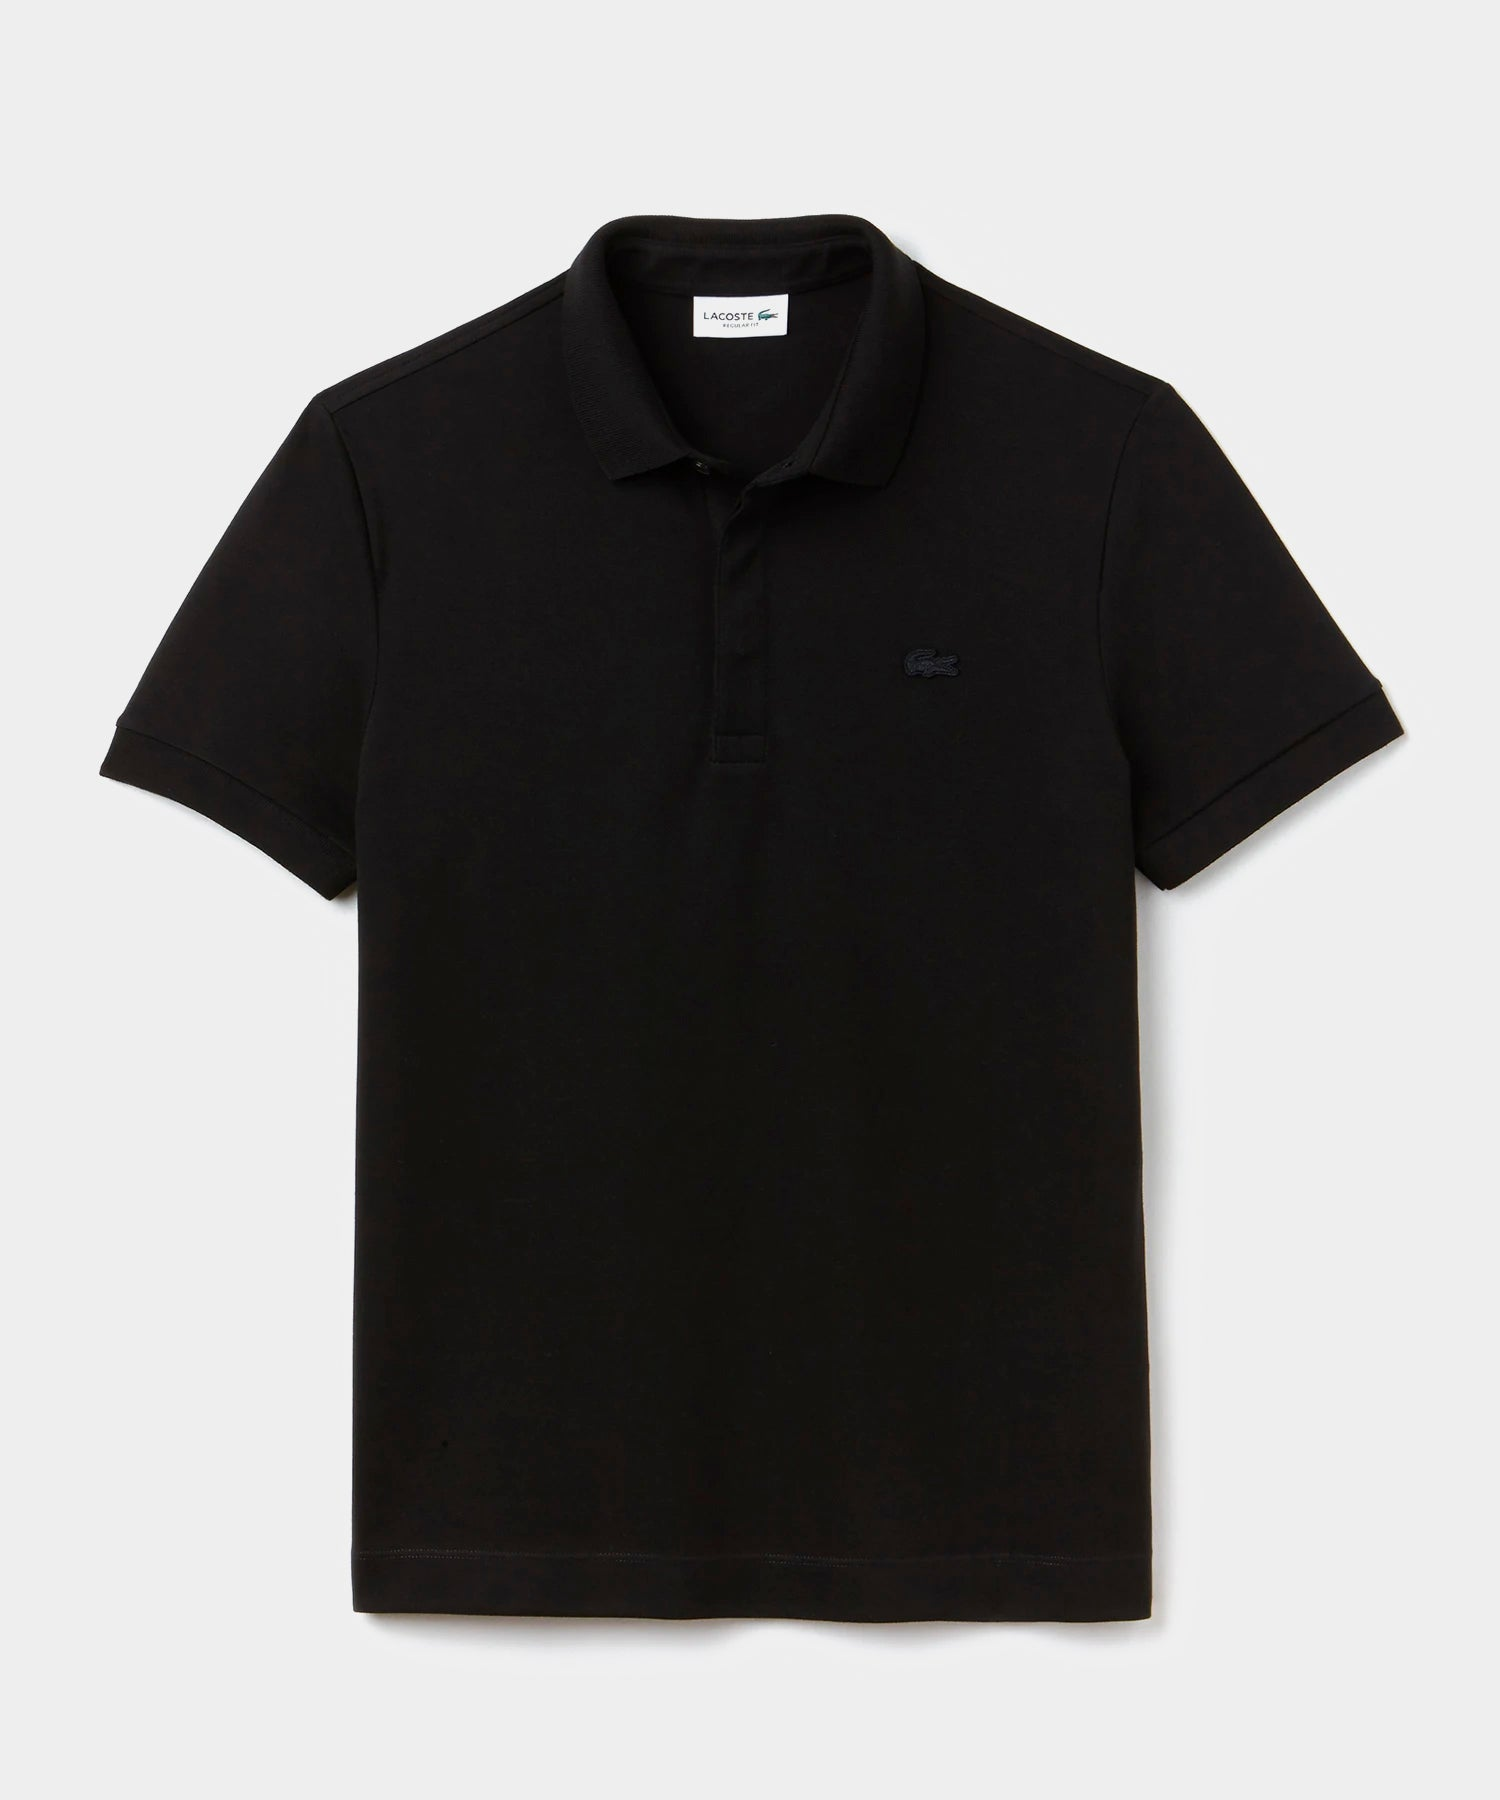 Lacoste Regular Fit Stretch Cotton Paris Polo in Black